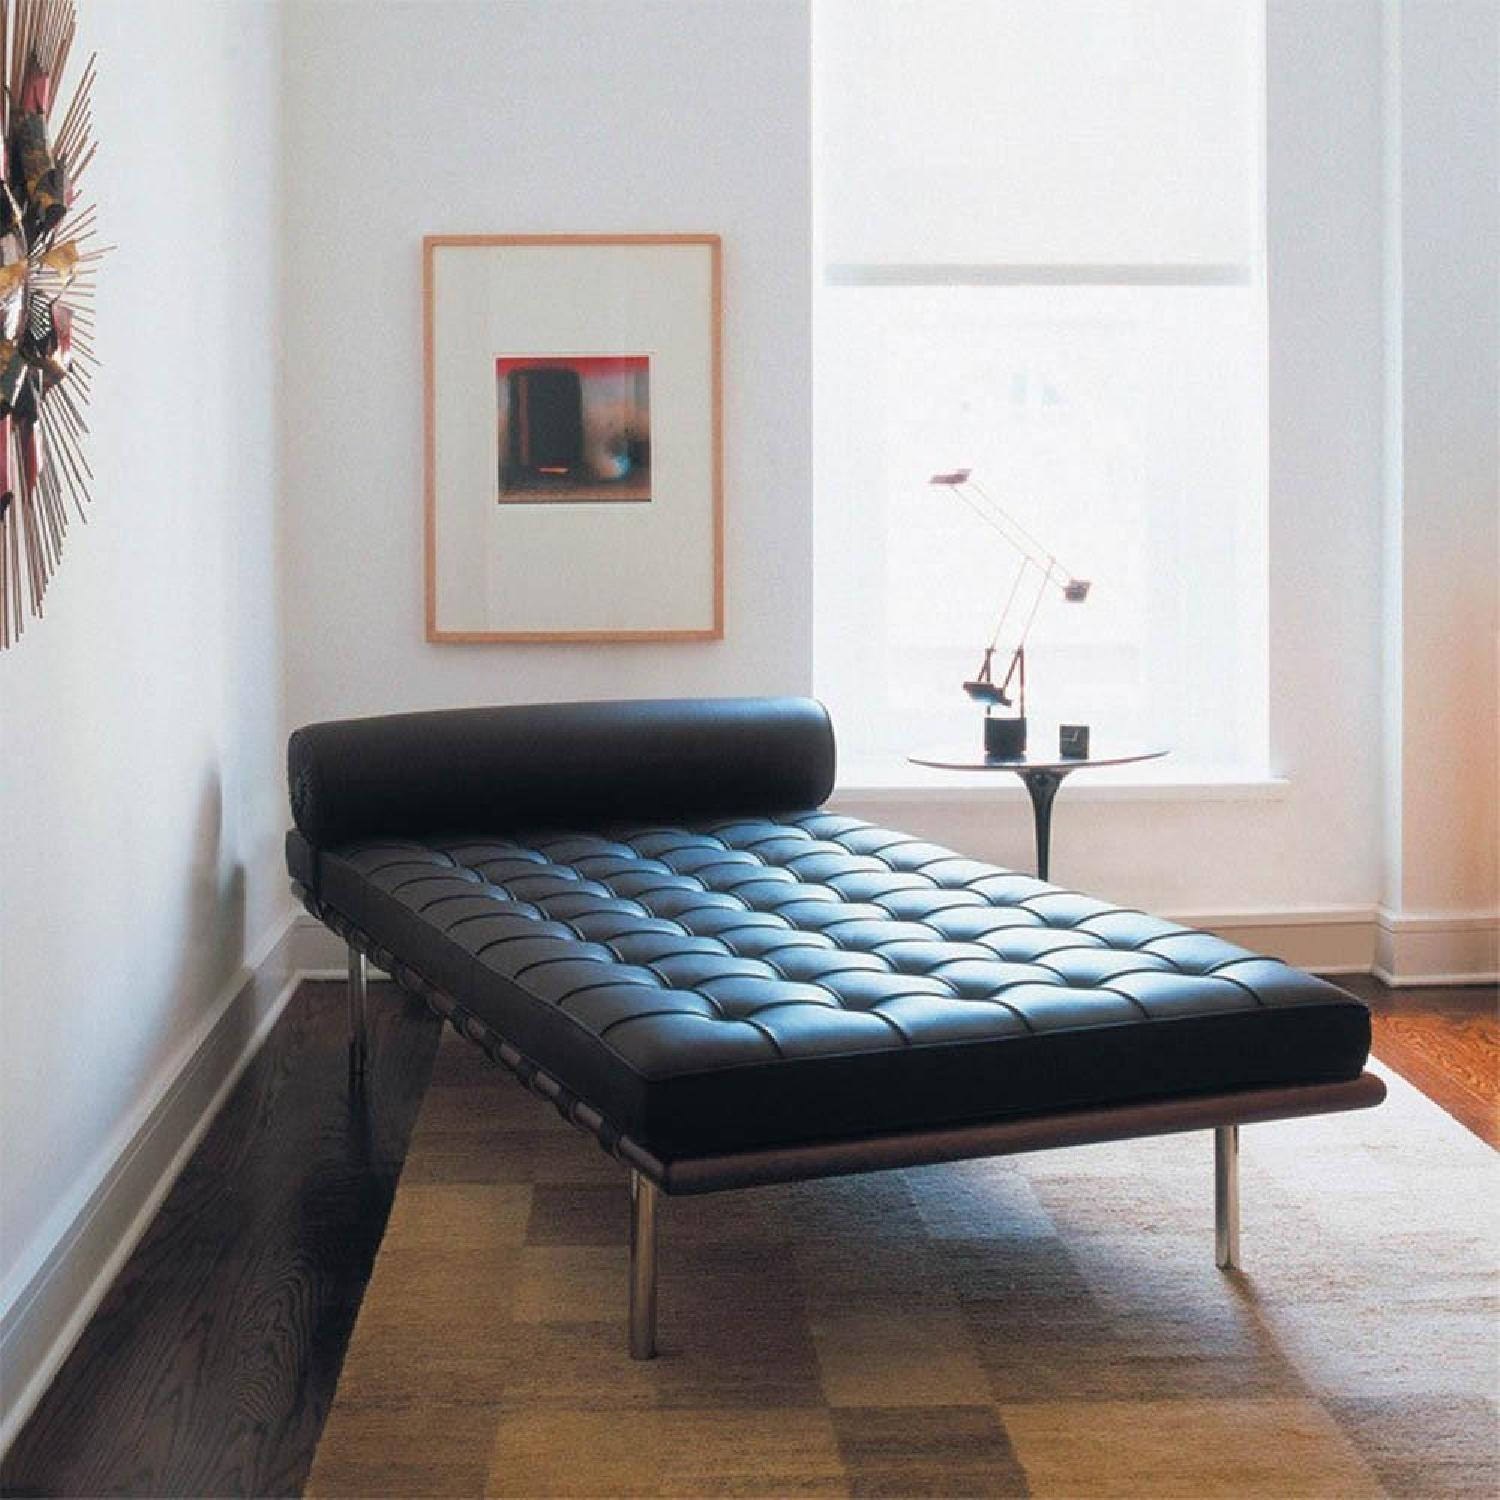 Barcelona Daybed Barcelona Daybed Replica In Black